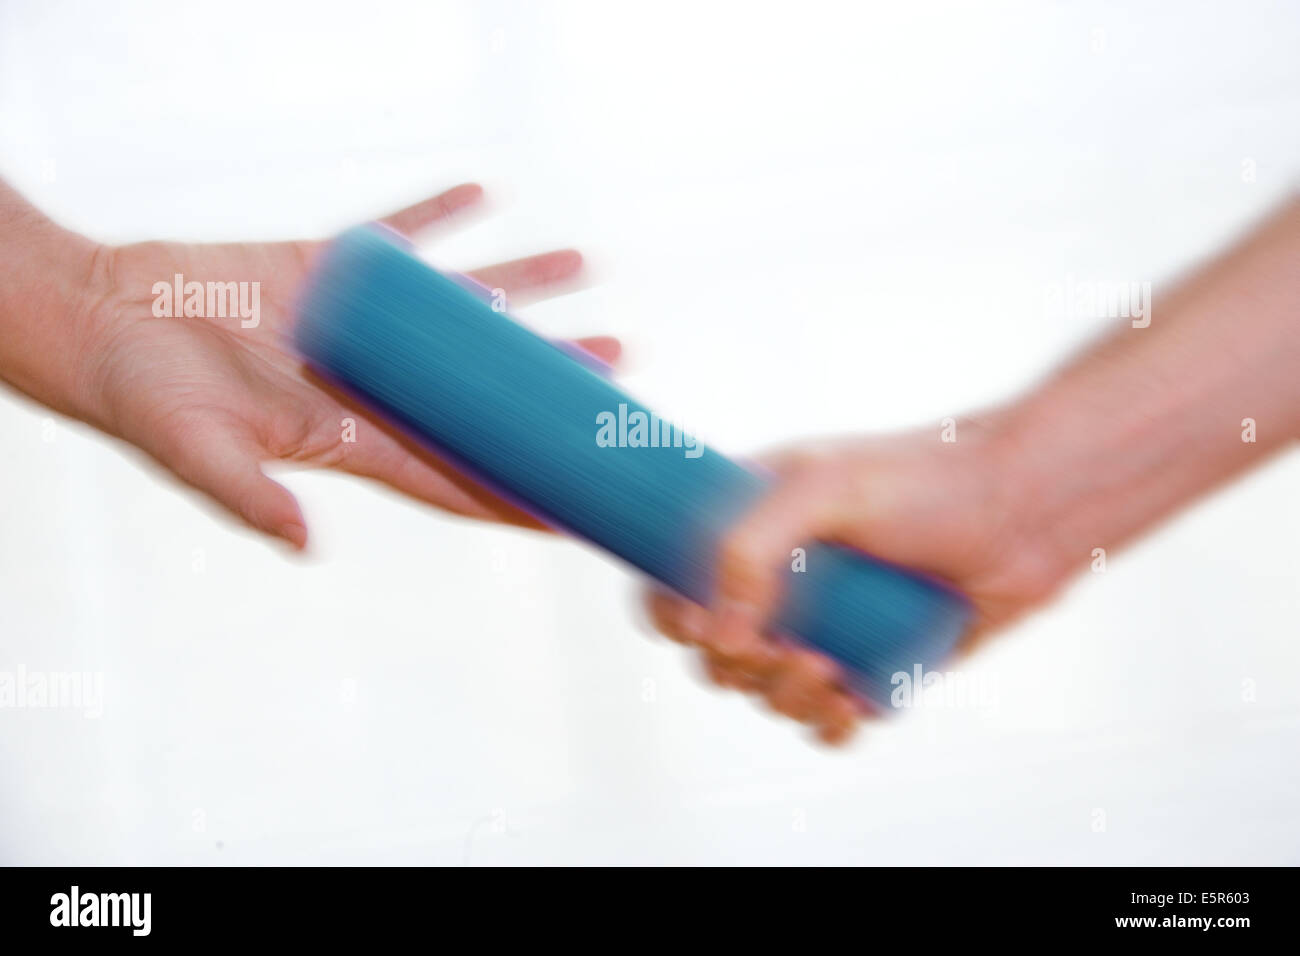 Baton passing - Stock Image